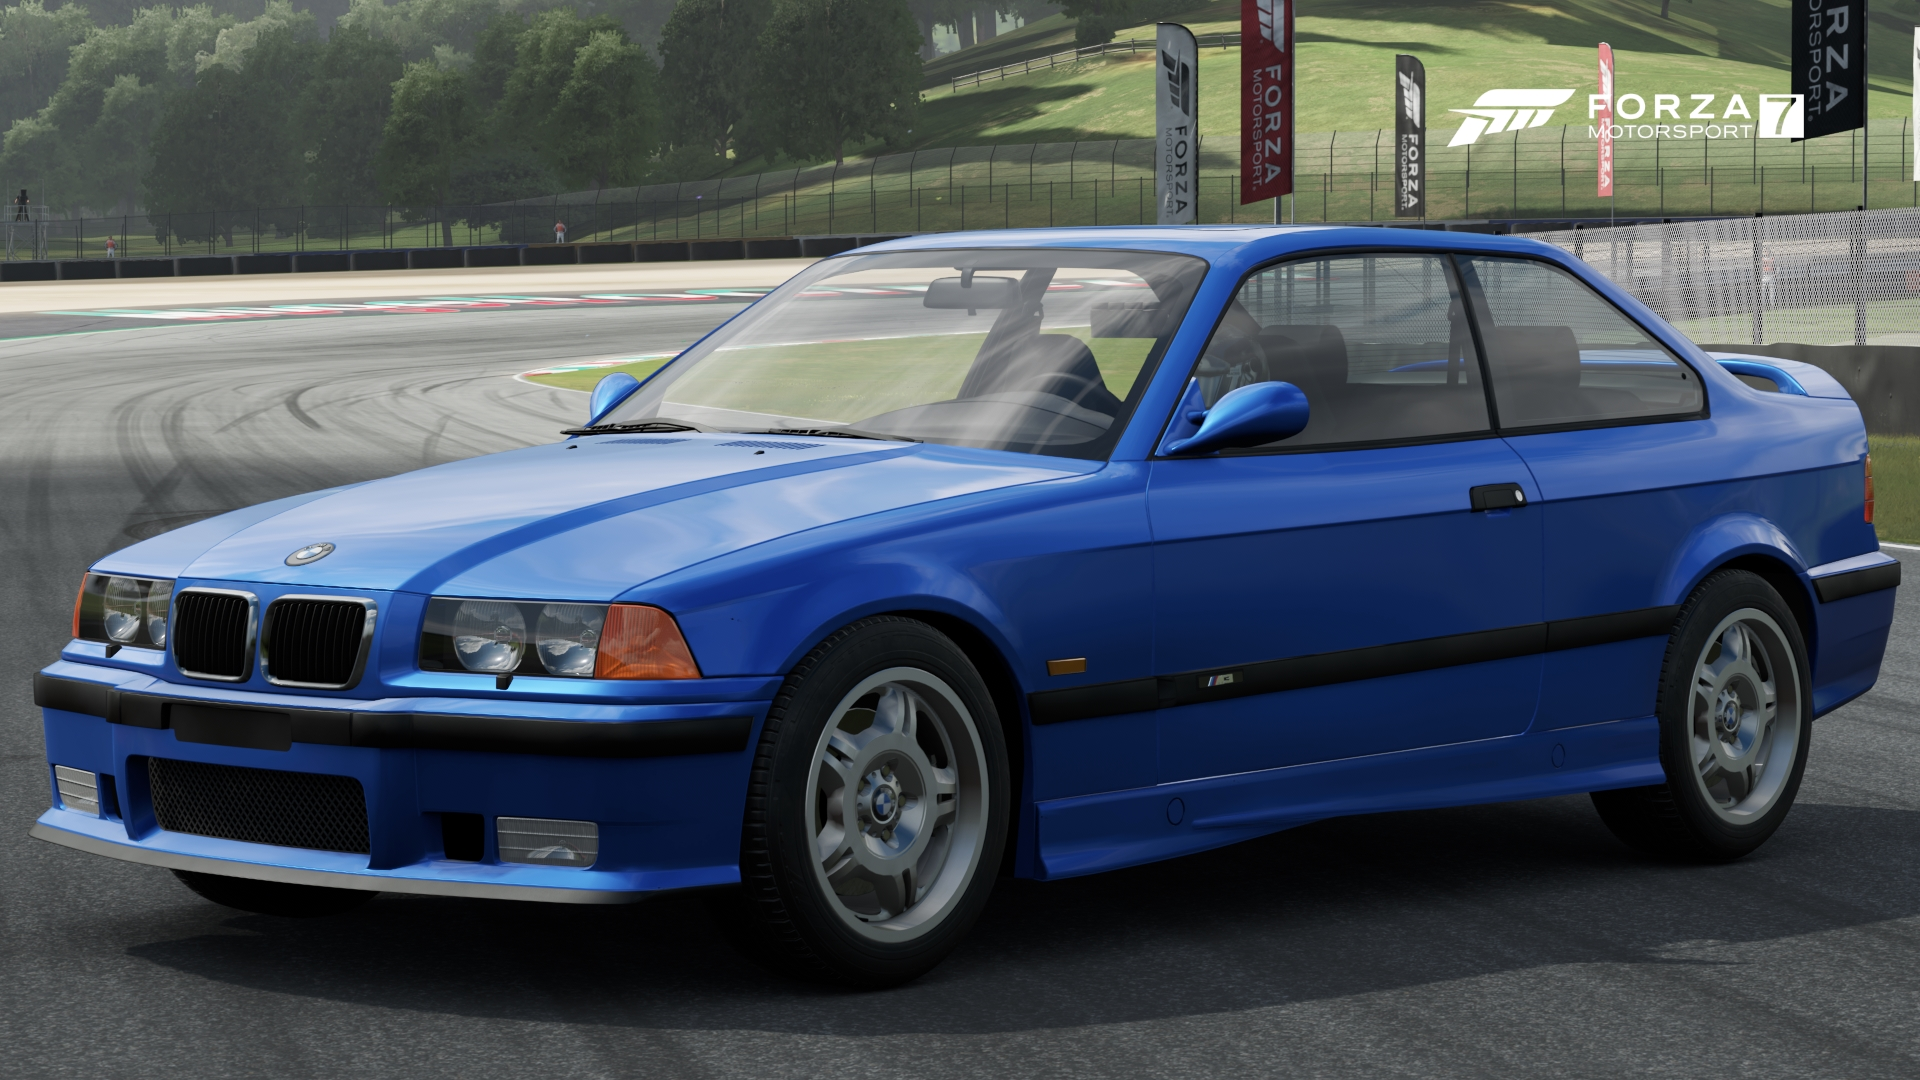 1997 BMW M3 In Forza Motorsport 7